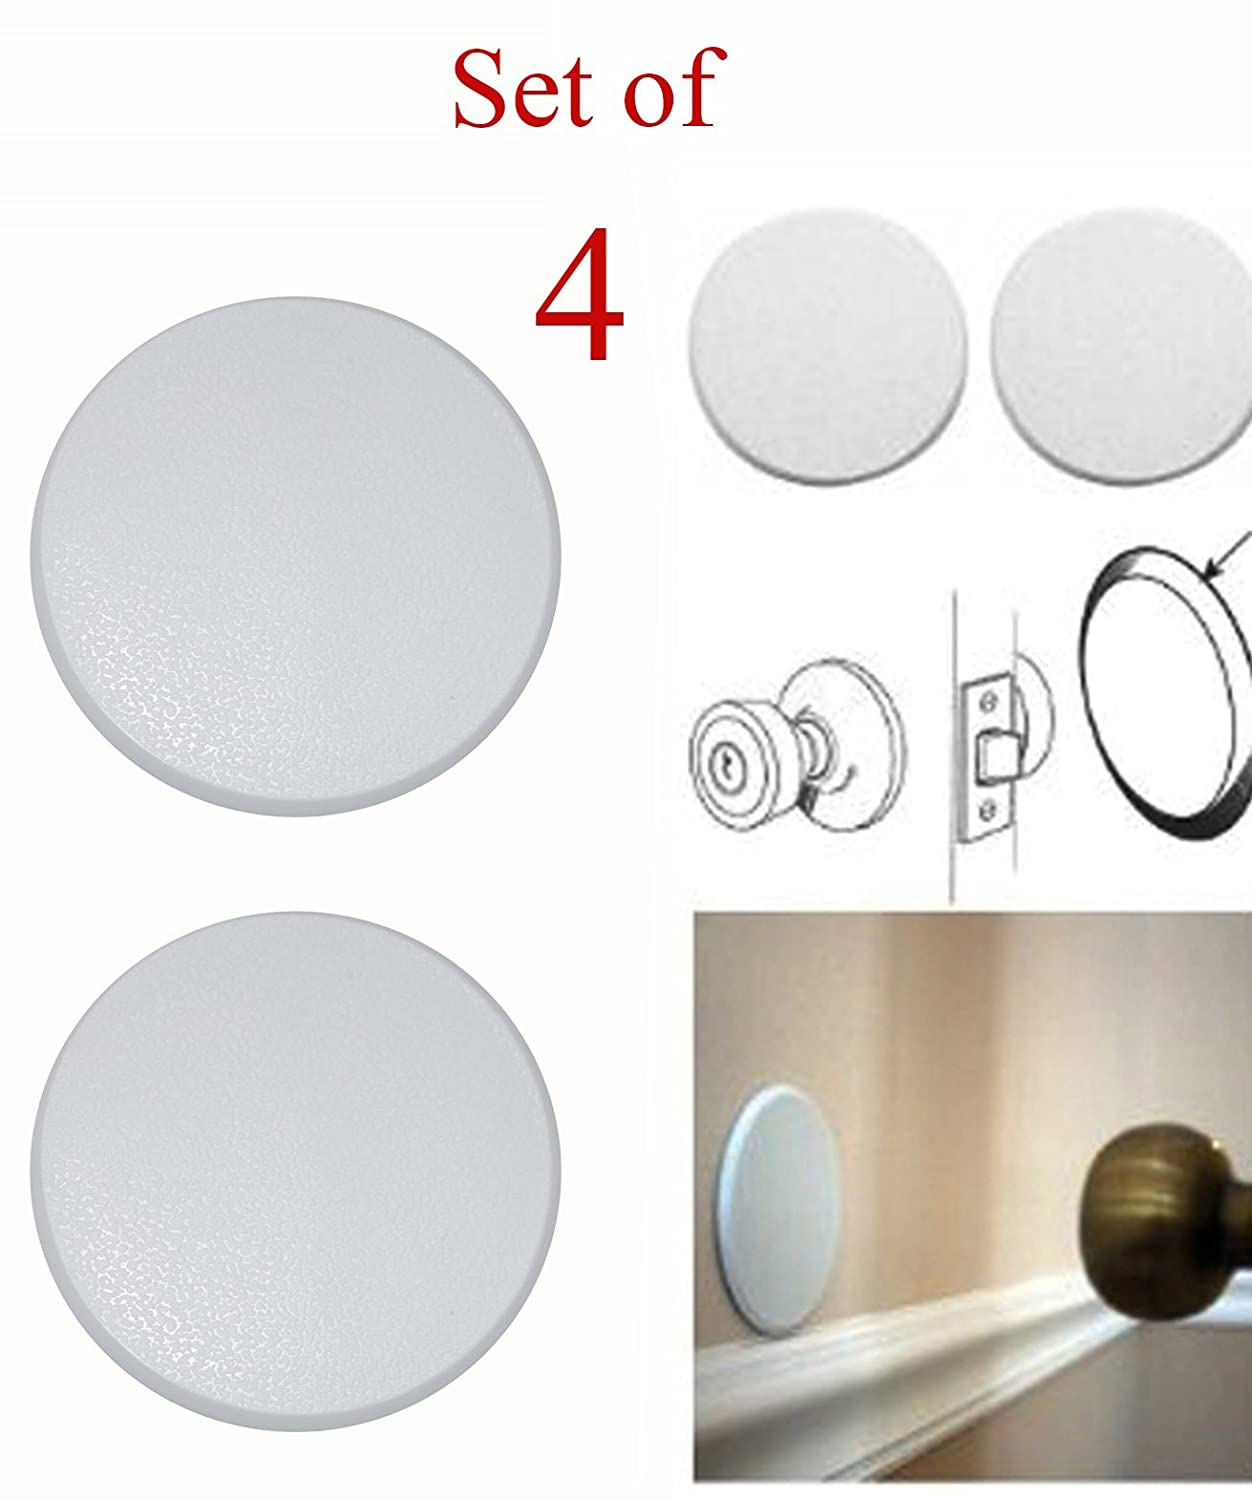 (4pcs) White Door Stop Knob Handle Wall Shield, - Exceptional Wall Protection - Easy Mounting with Self-Adhesive Surface - Highly Durable!